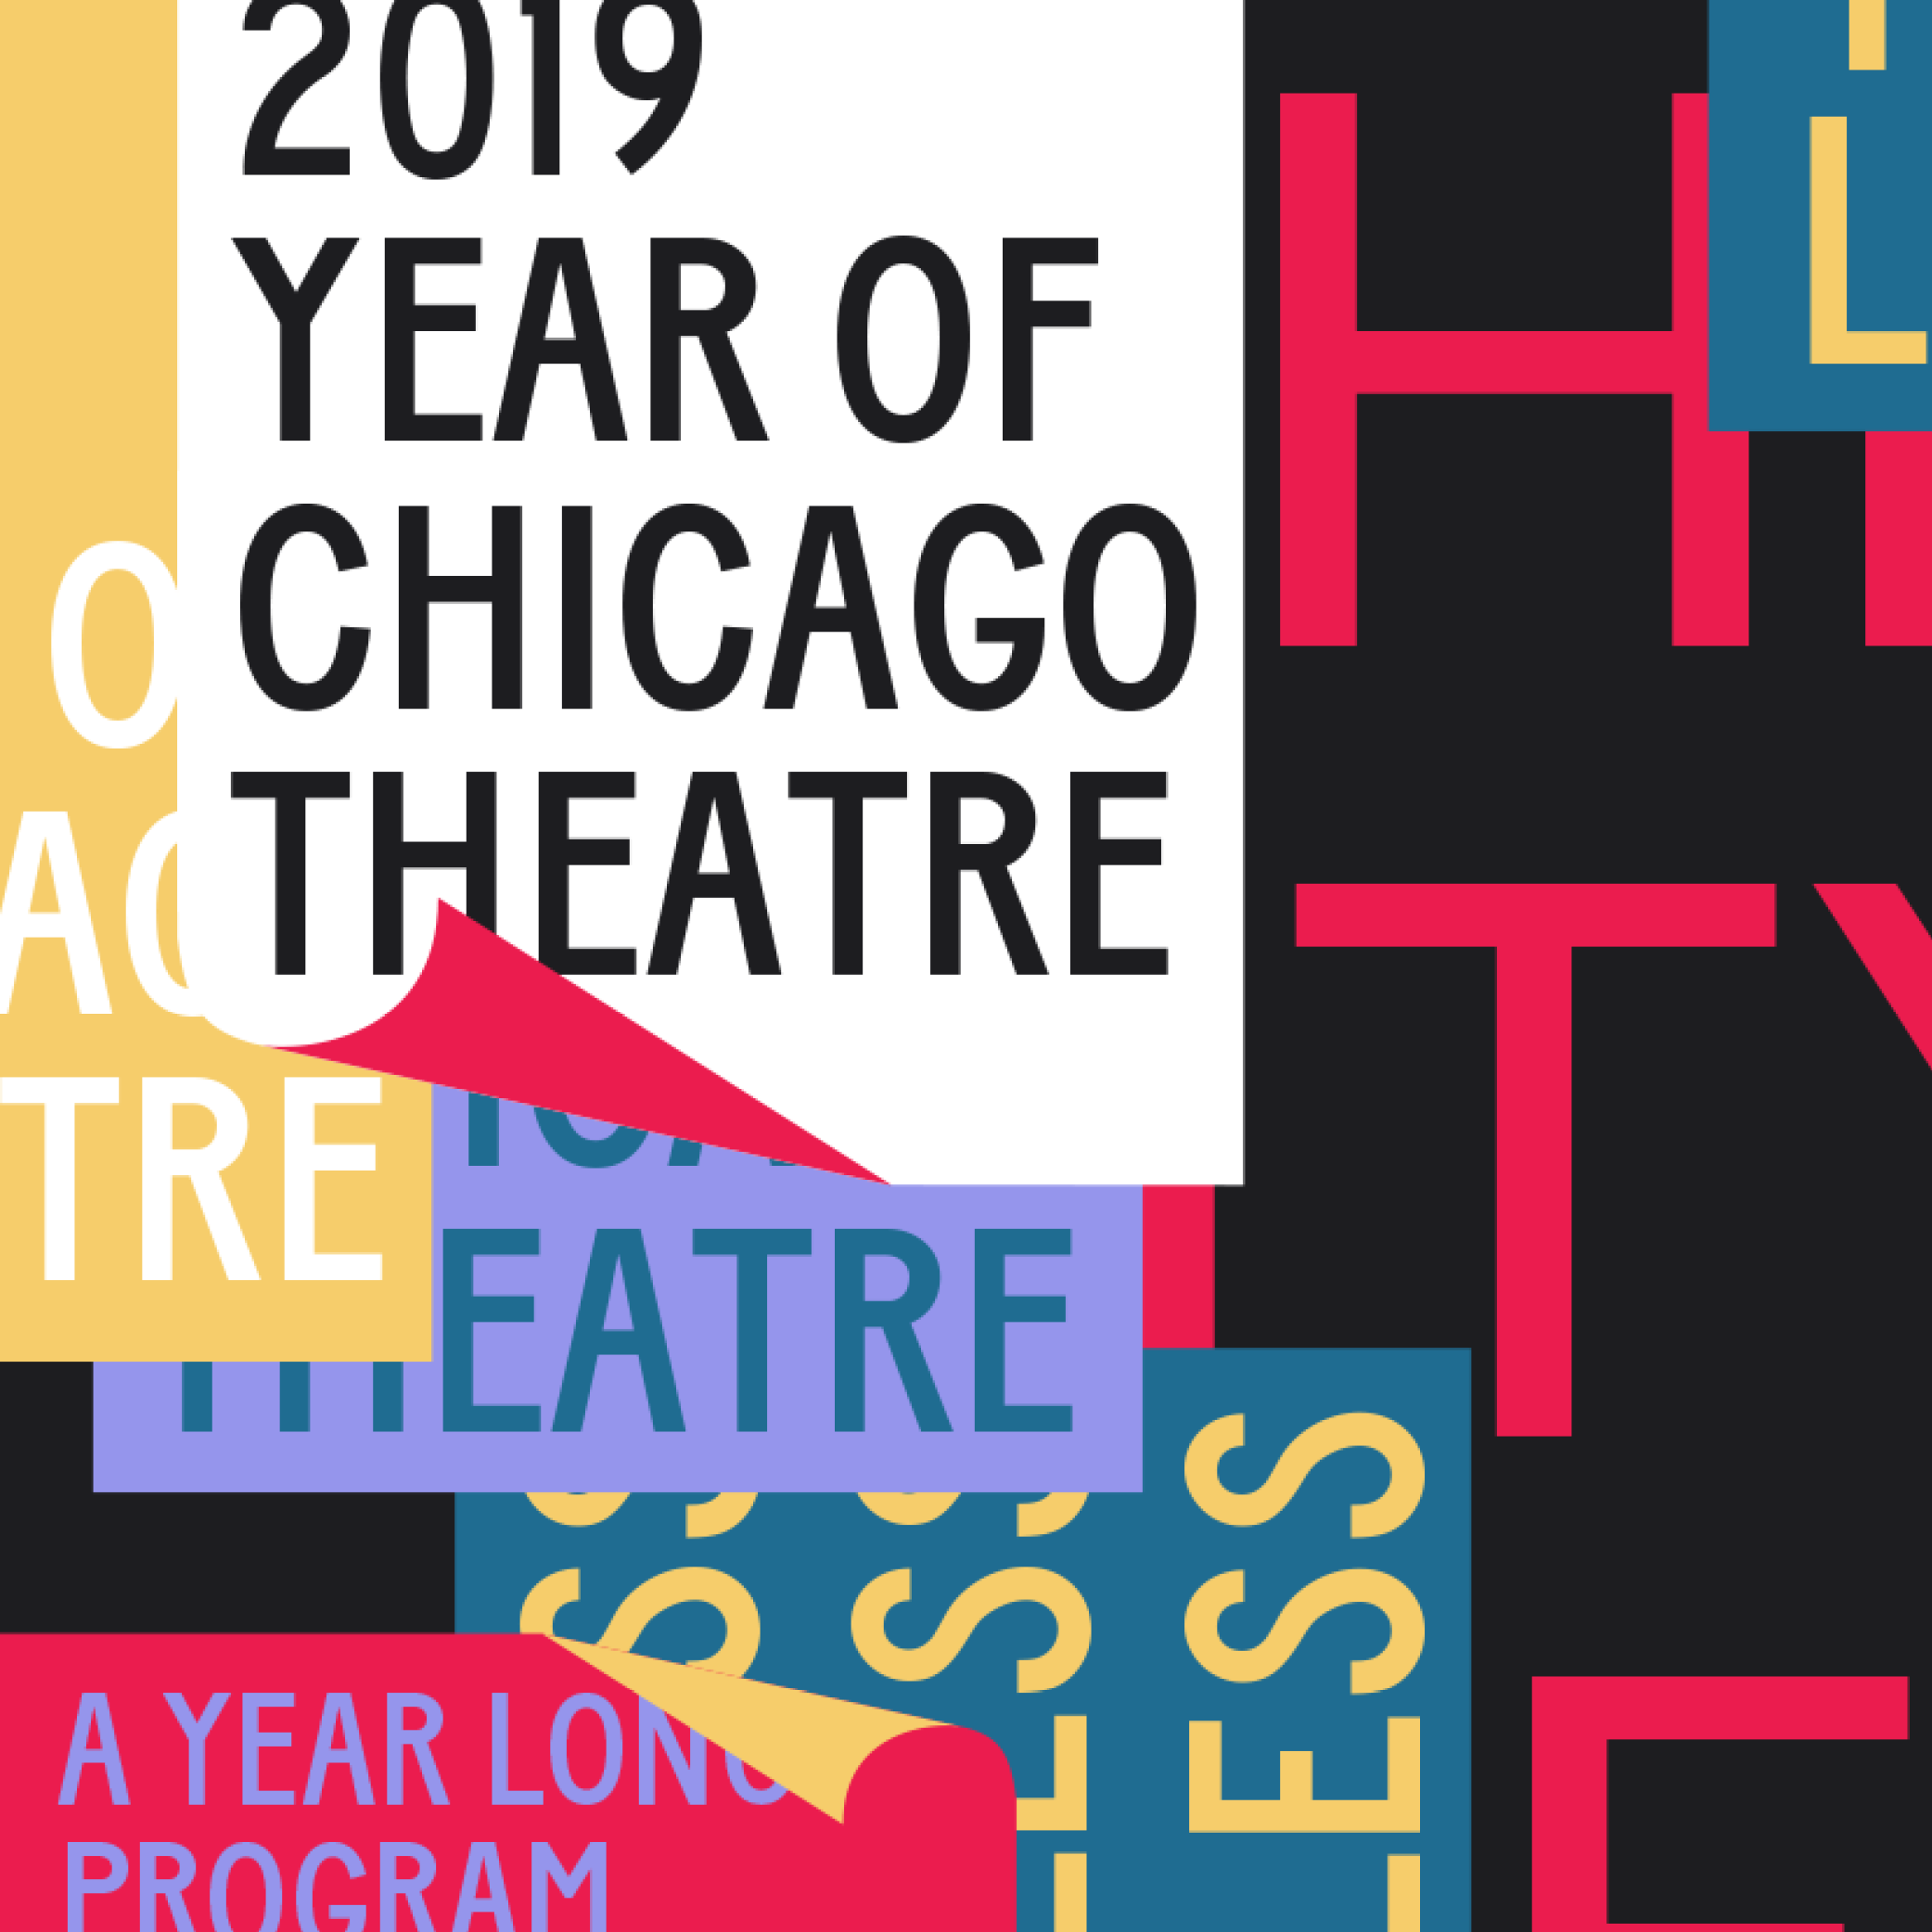 2019 Year of Chicago Theatre